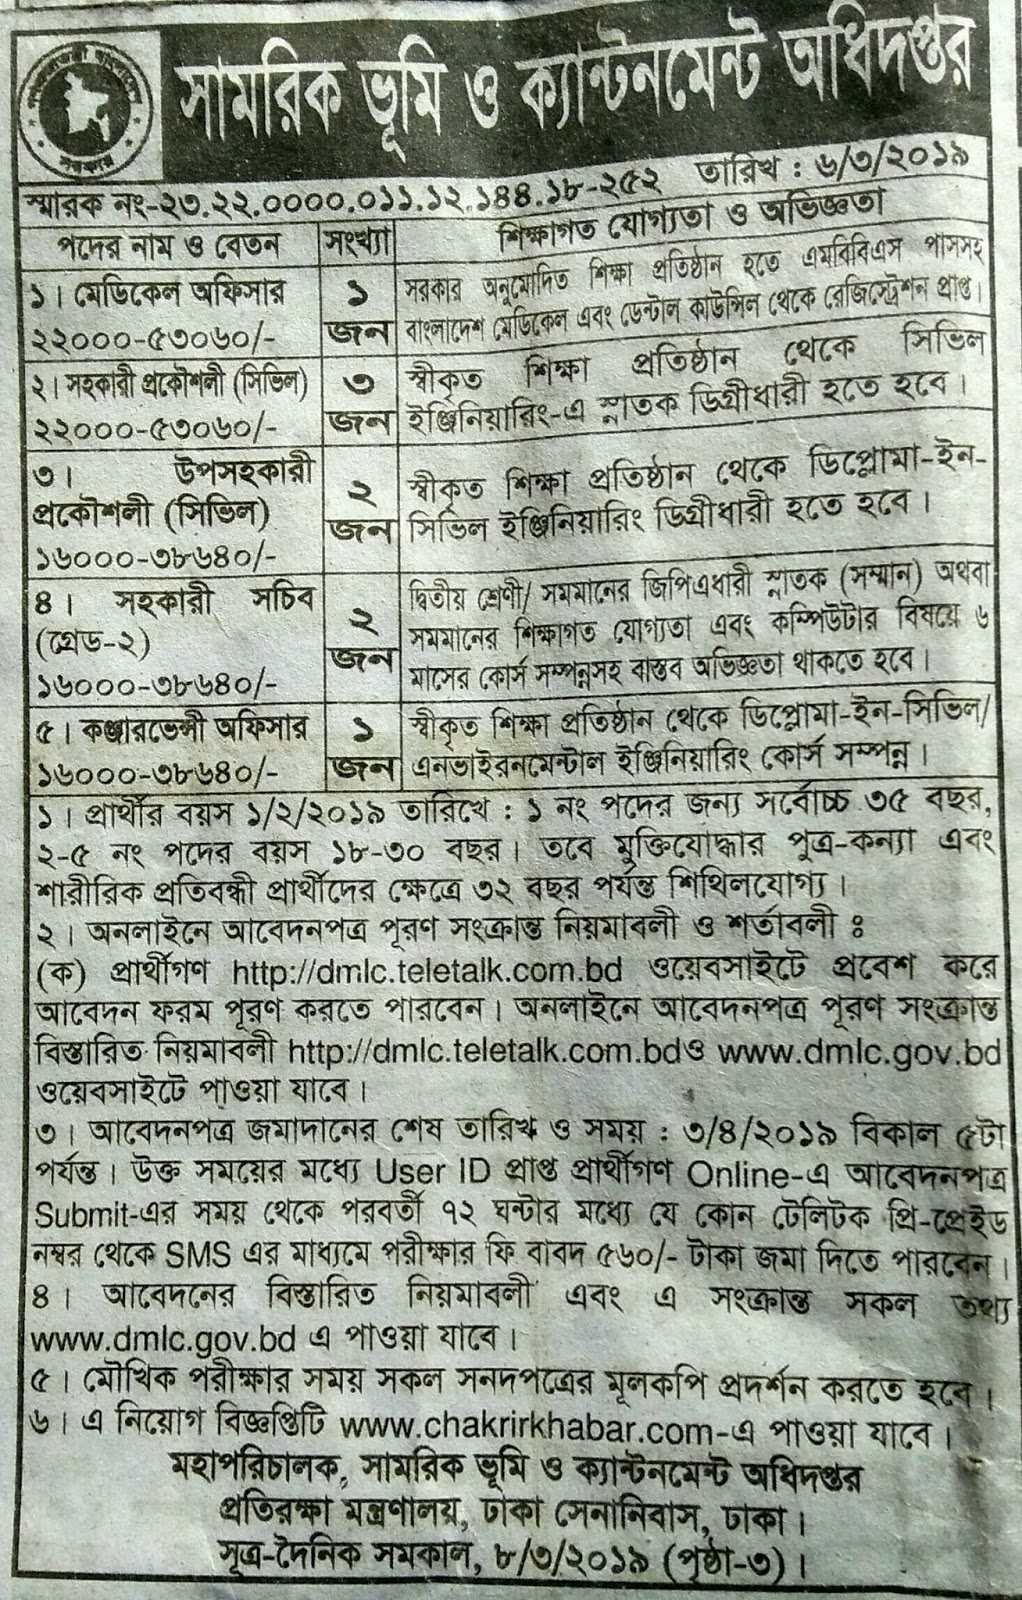 Department of Military Lands and Cantonment  job circular